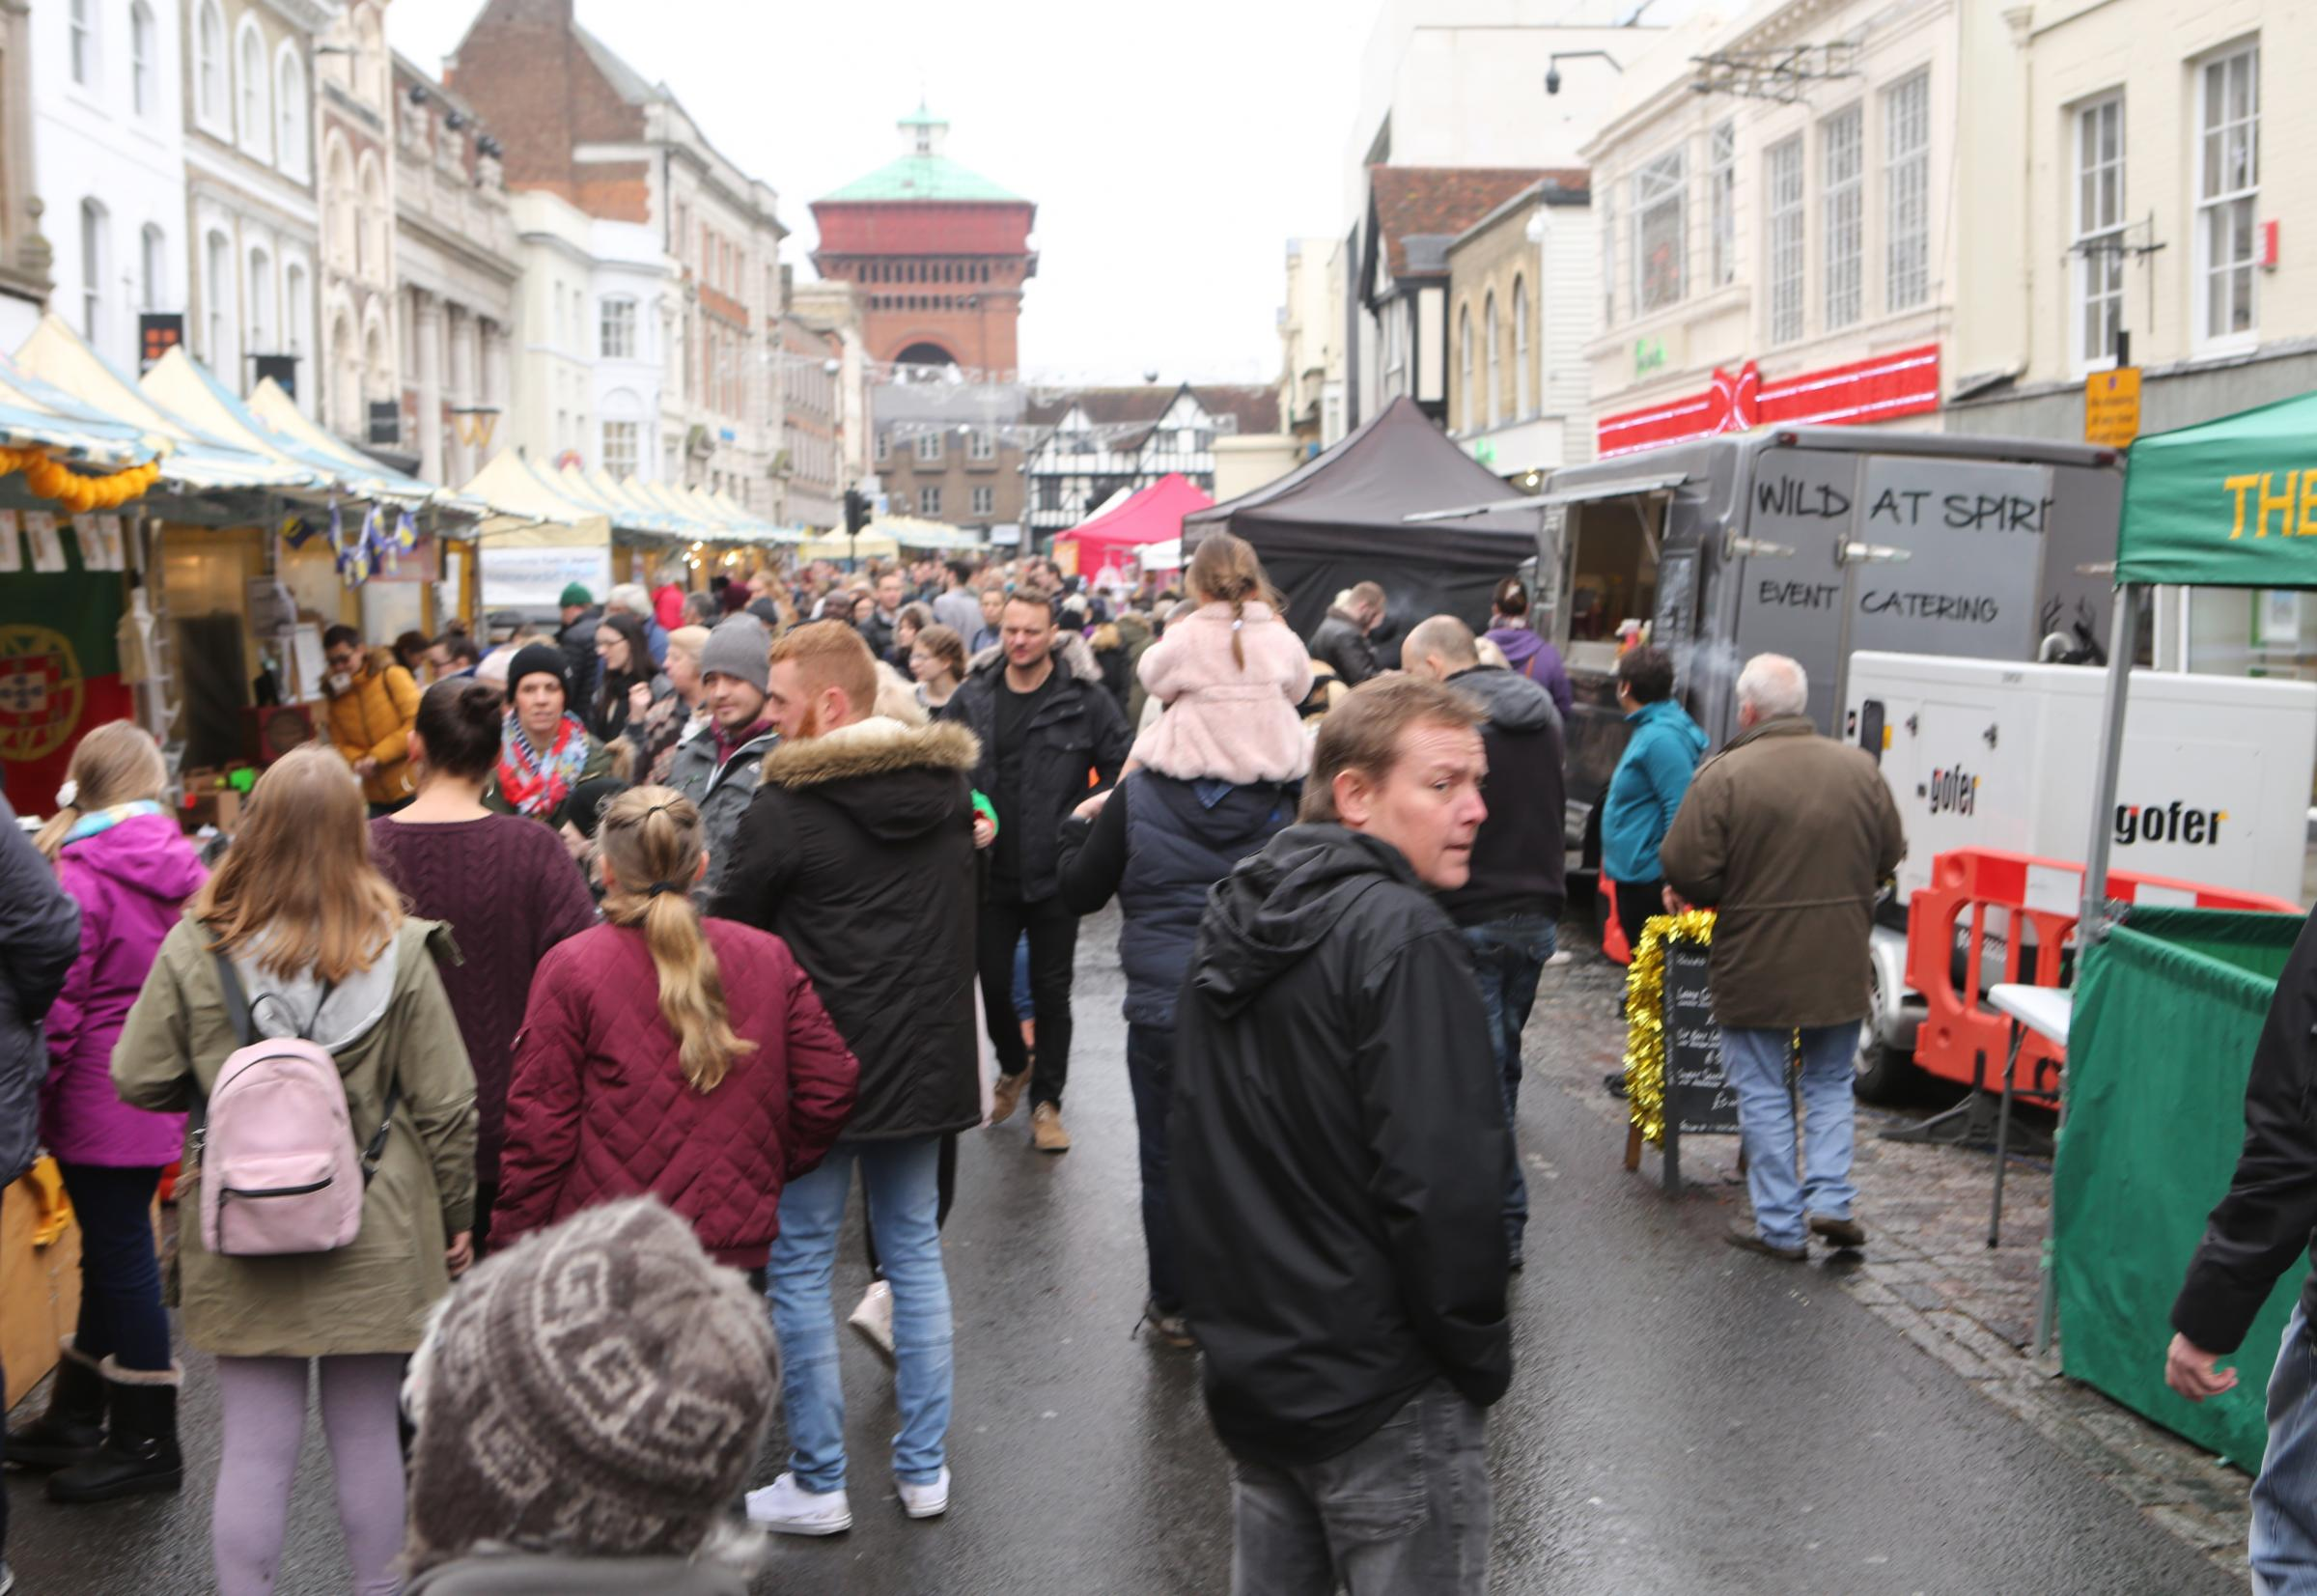 Festive - Colchester High Street Christmas Food Market taking place this Sunday.